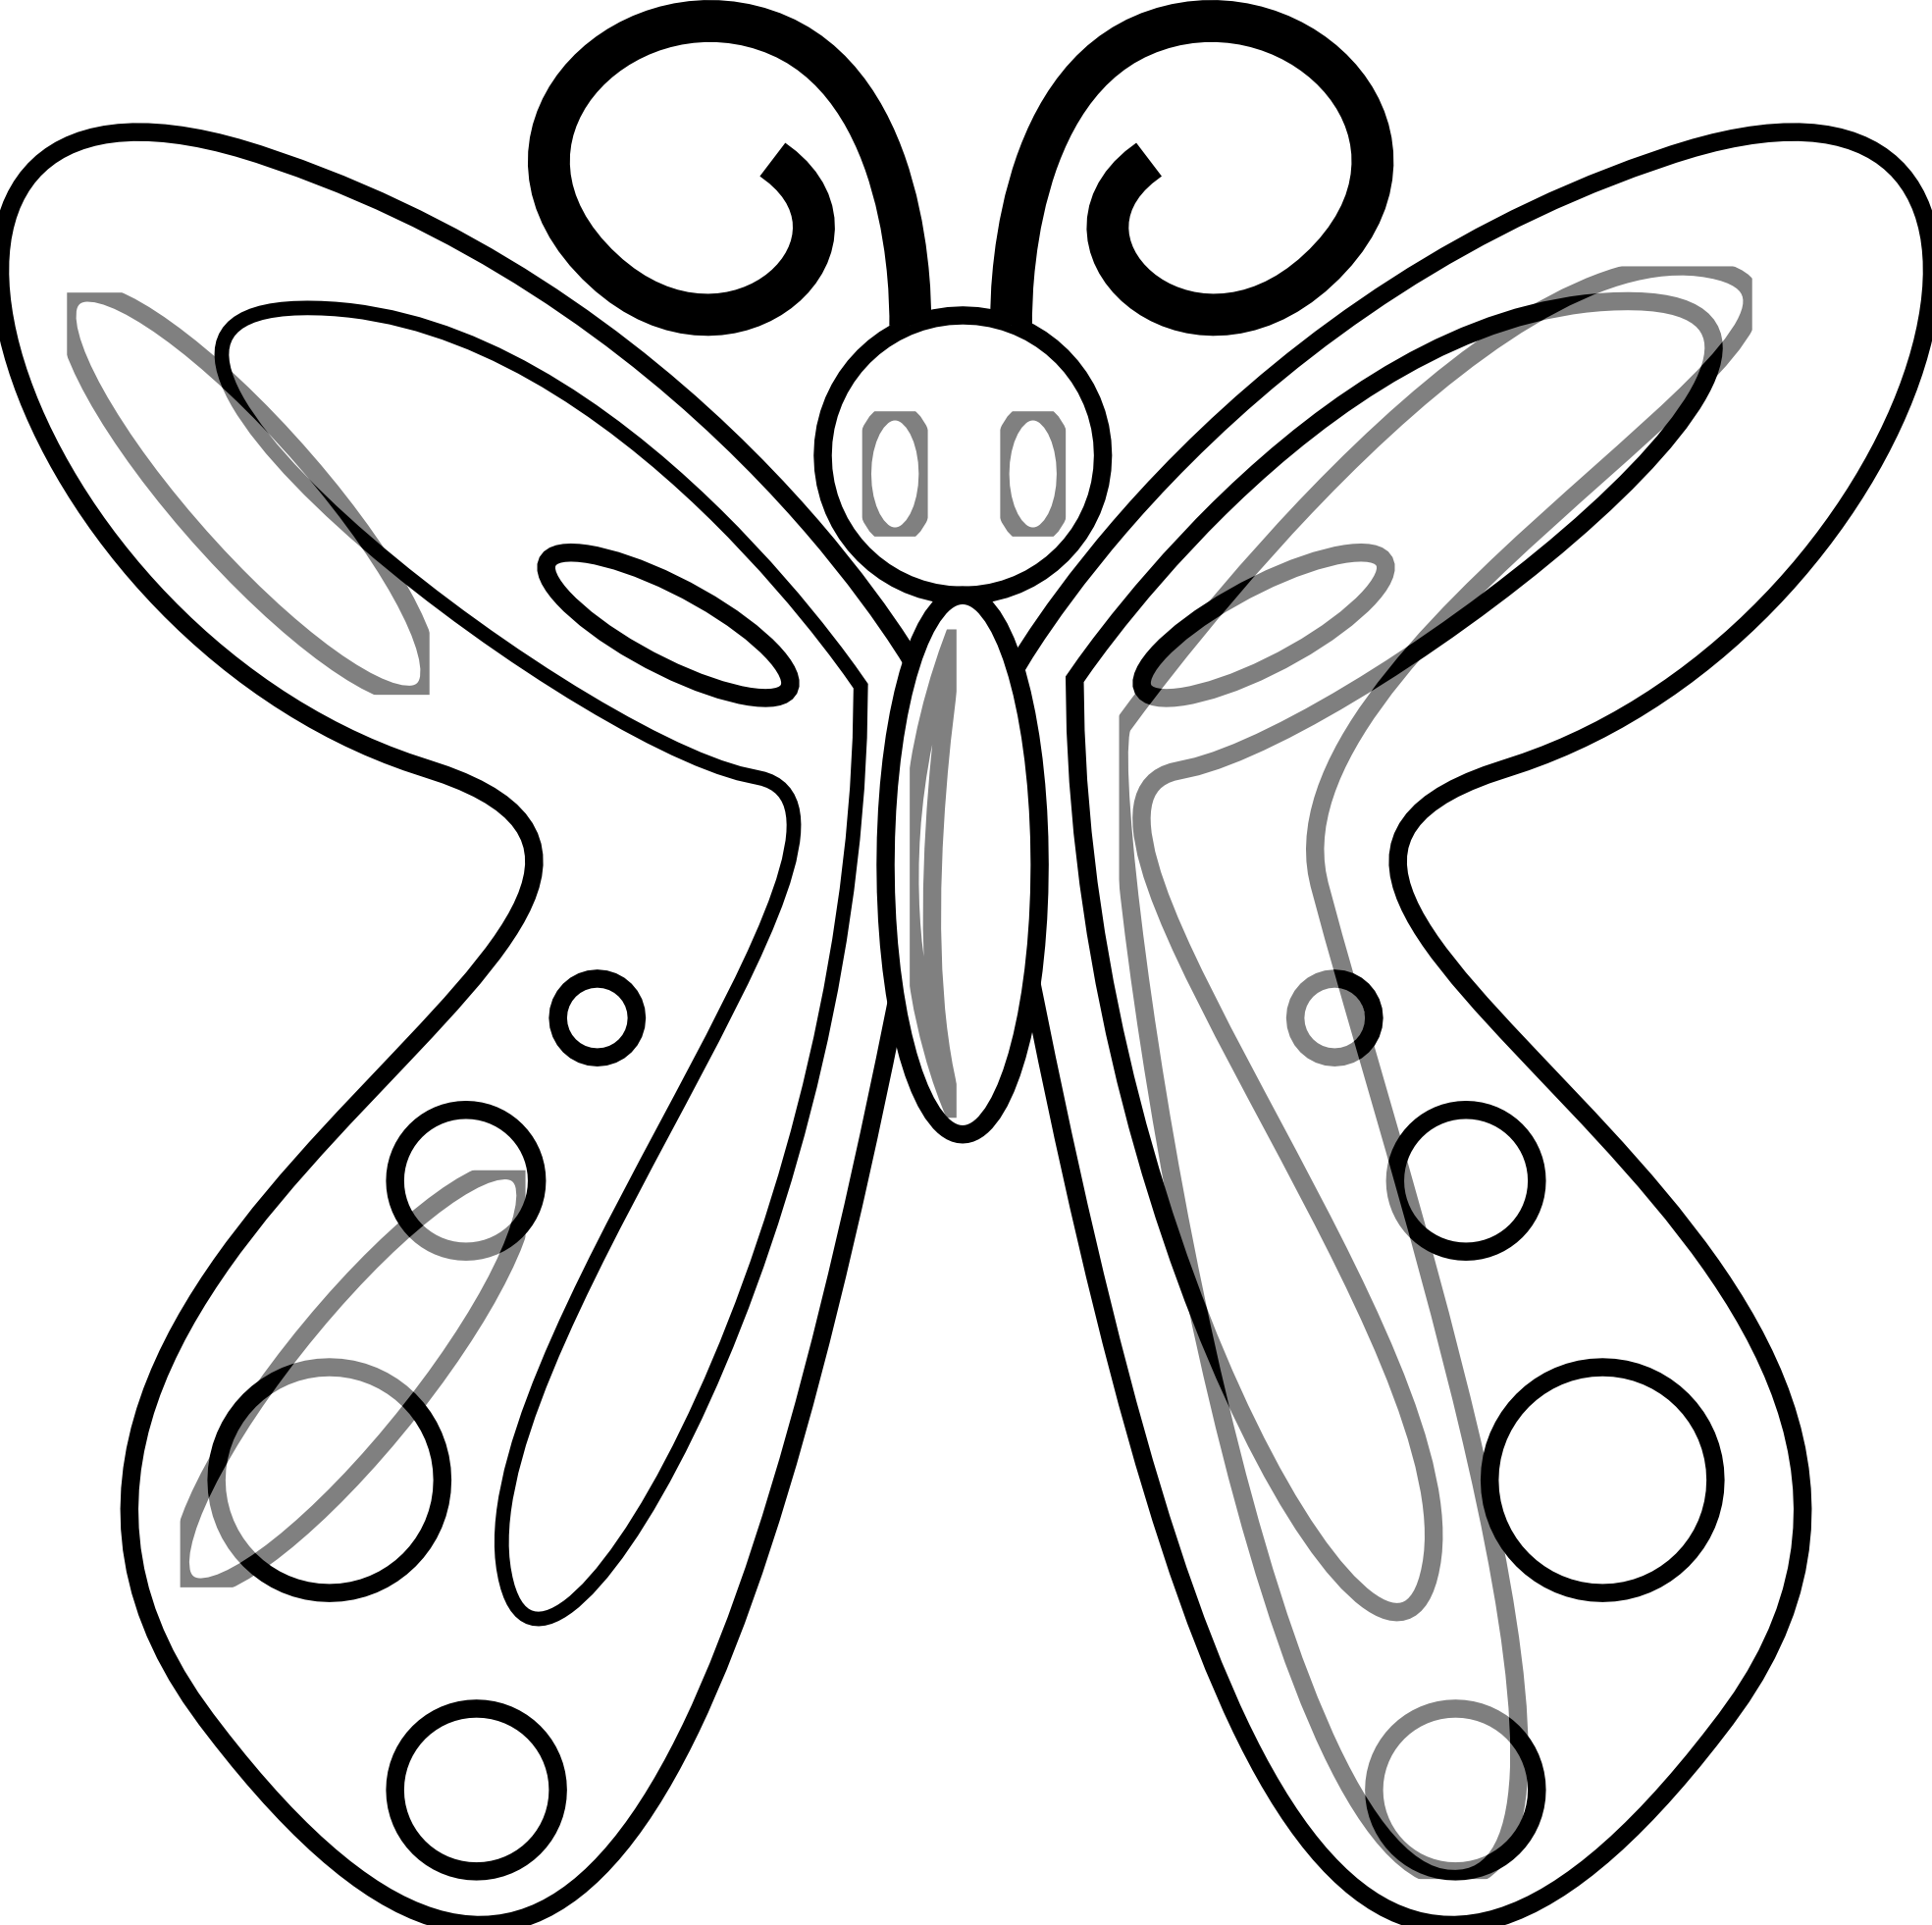 Butterfly Black And White Clip Art - Cliparts.co